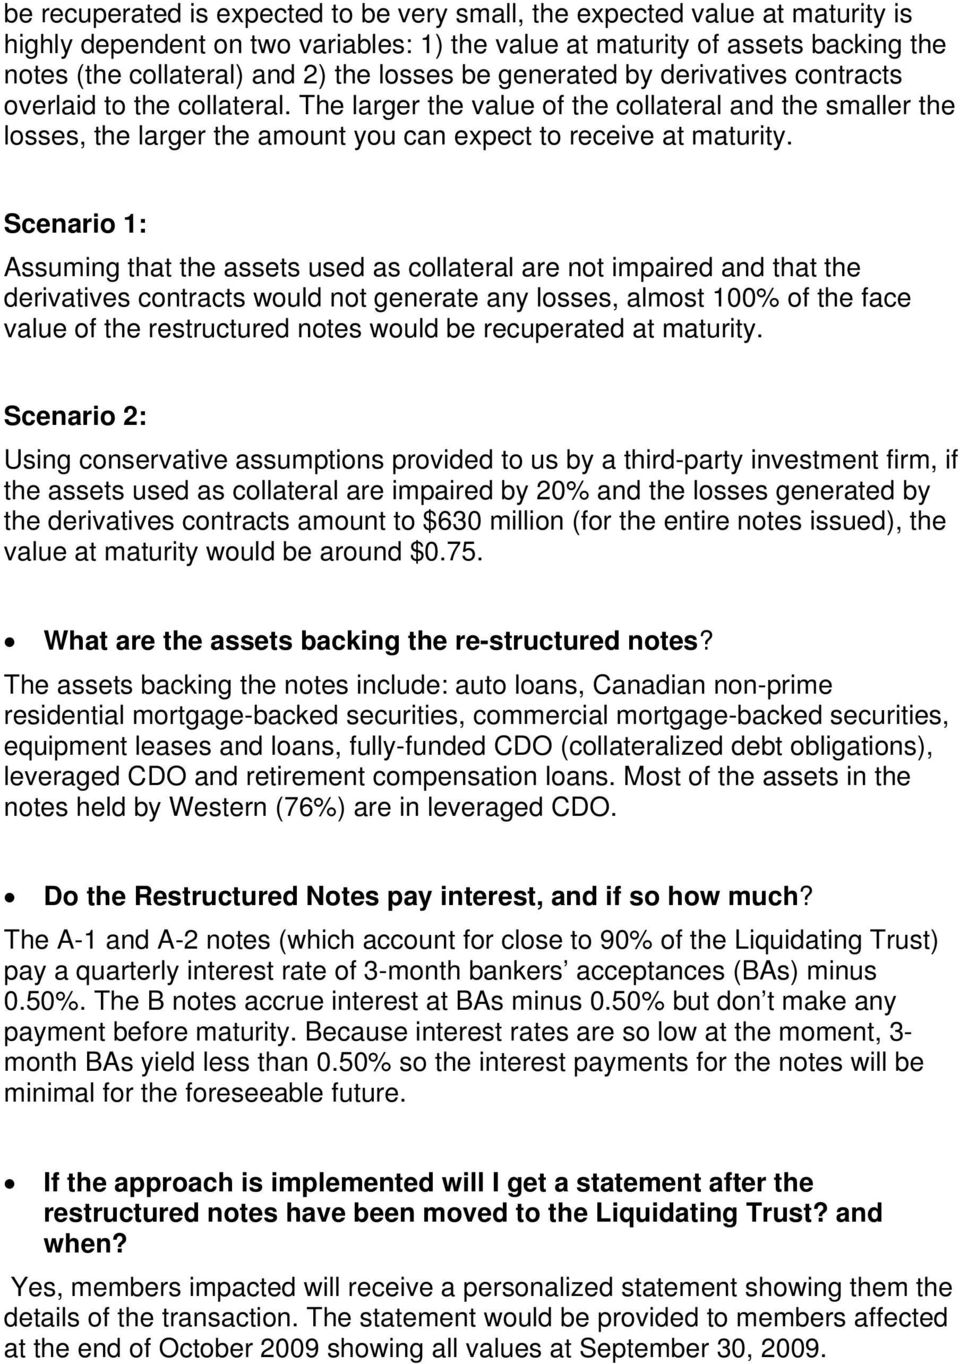 Scenario 1: Assuming that the assets used as collateral are not impaired and that the derivatives contracts would not generate any losses, almost 100% of the face value of the restructured notes